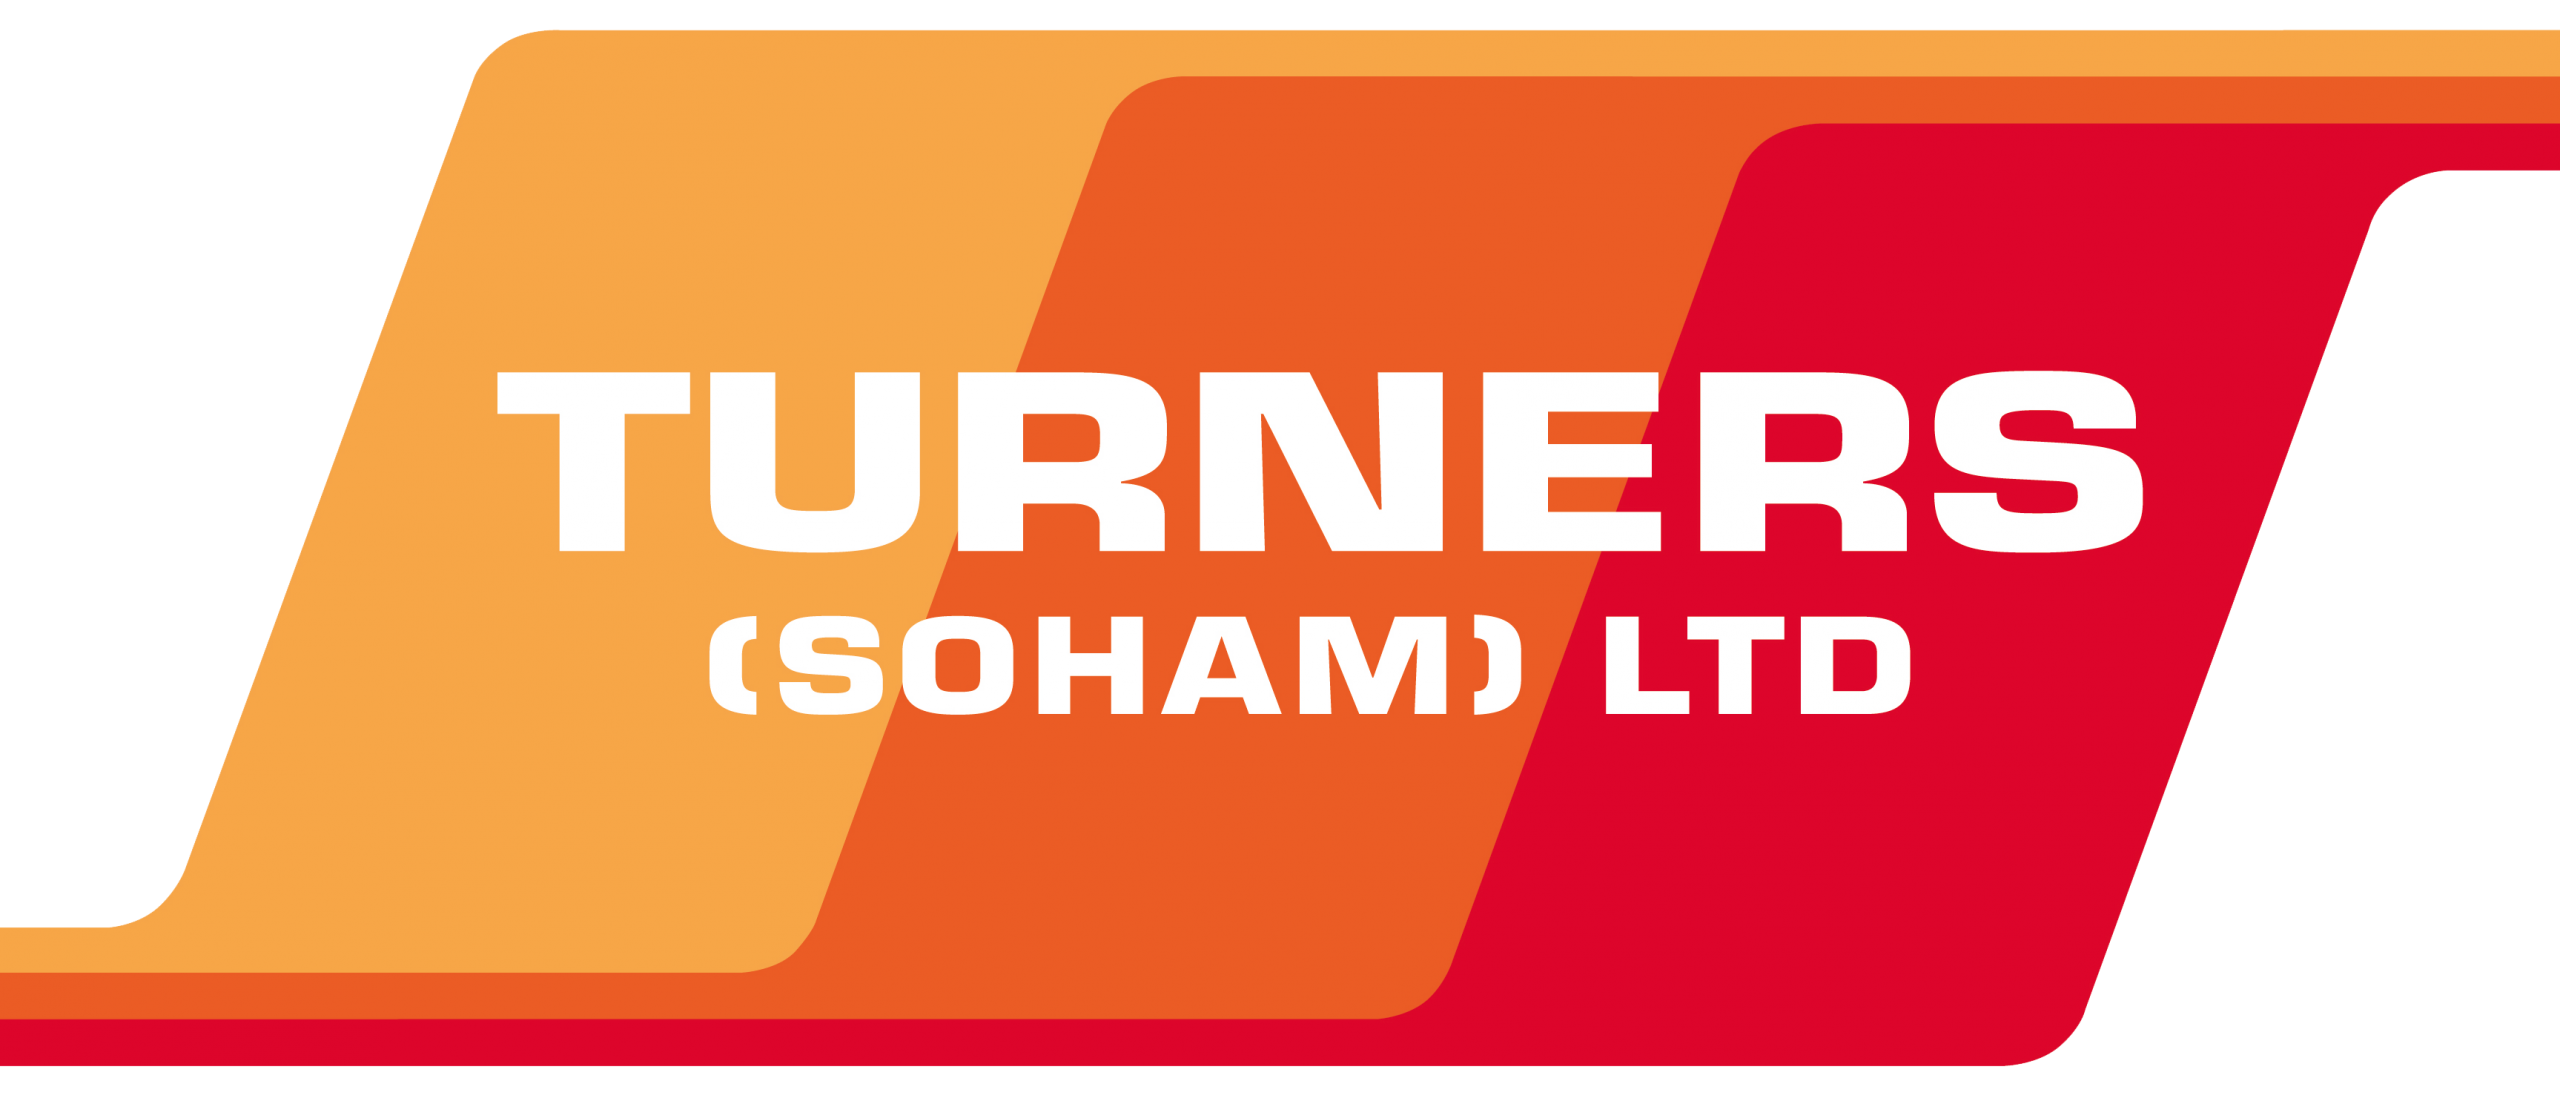 Turners logo